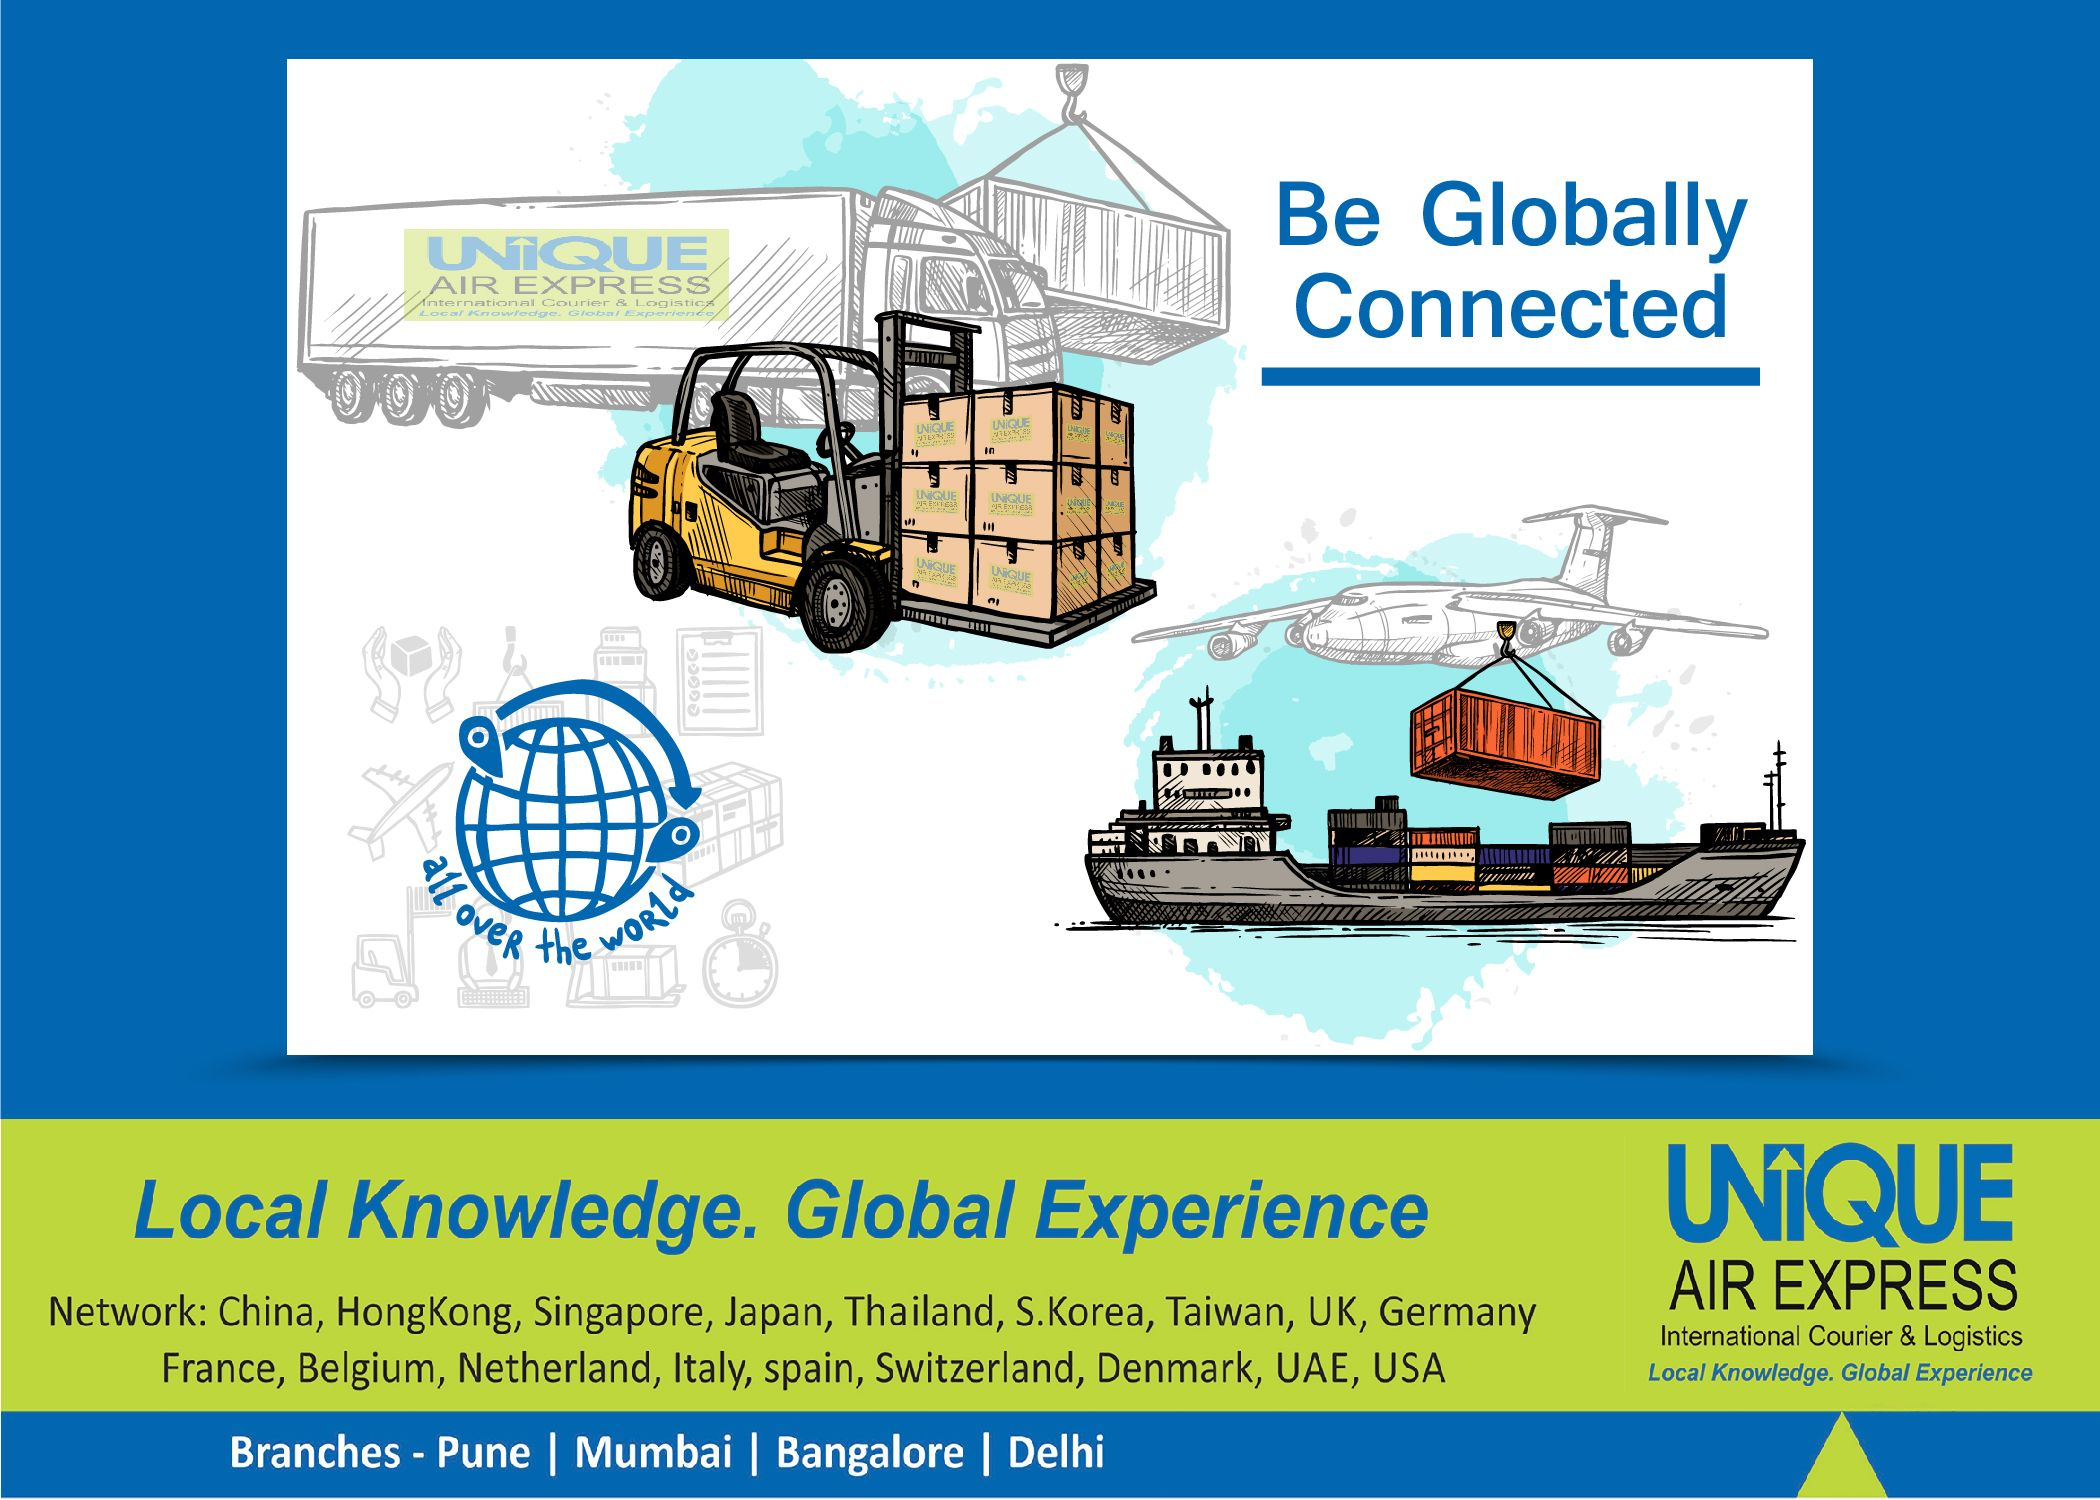 Be Globally Connected! We connect the world with